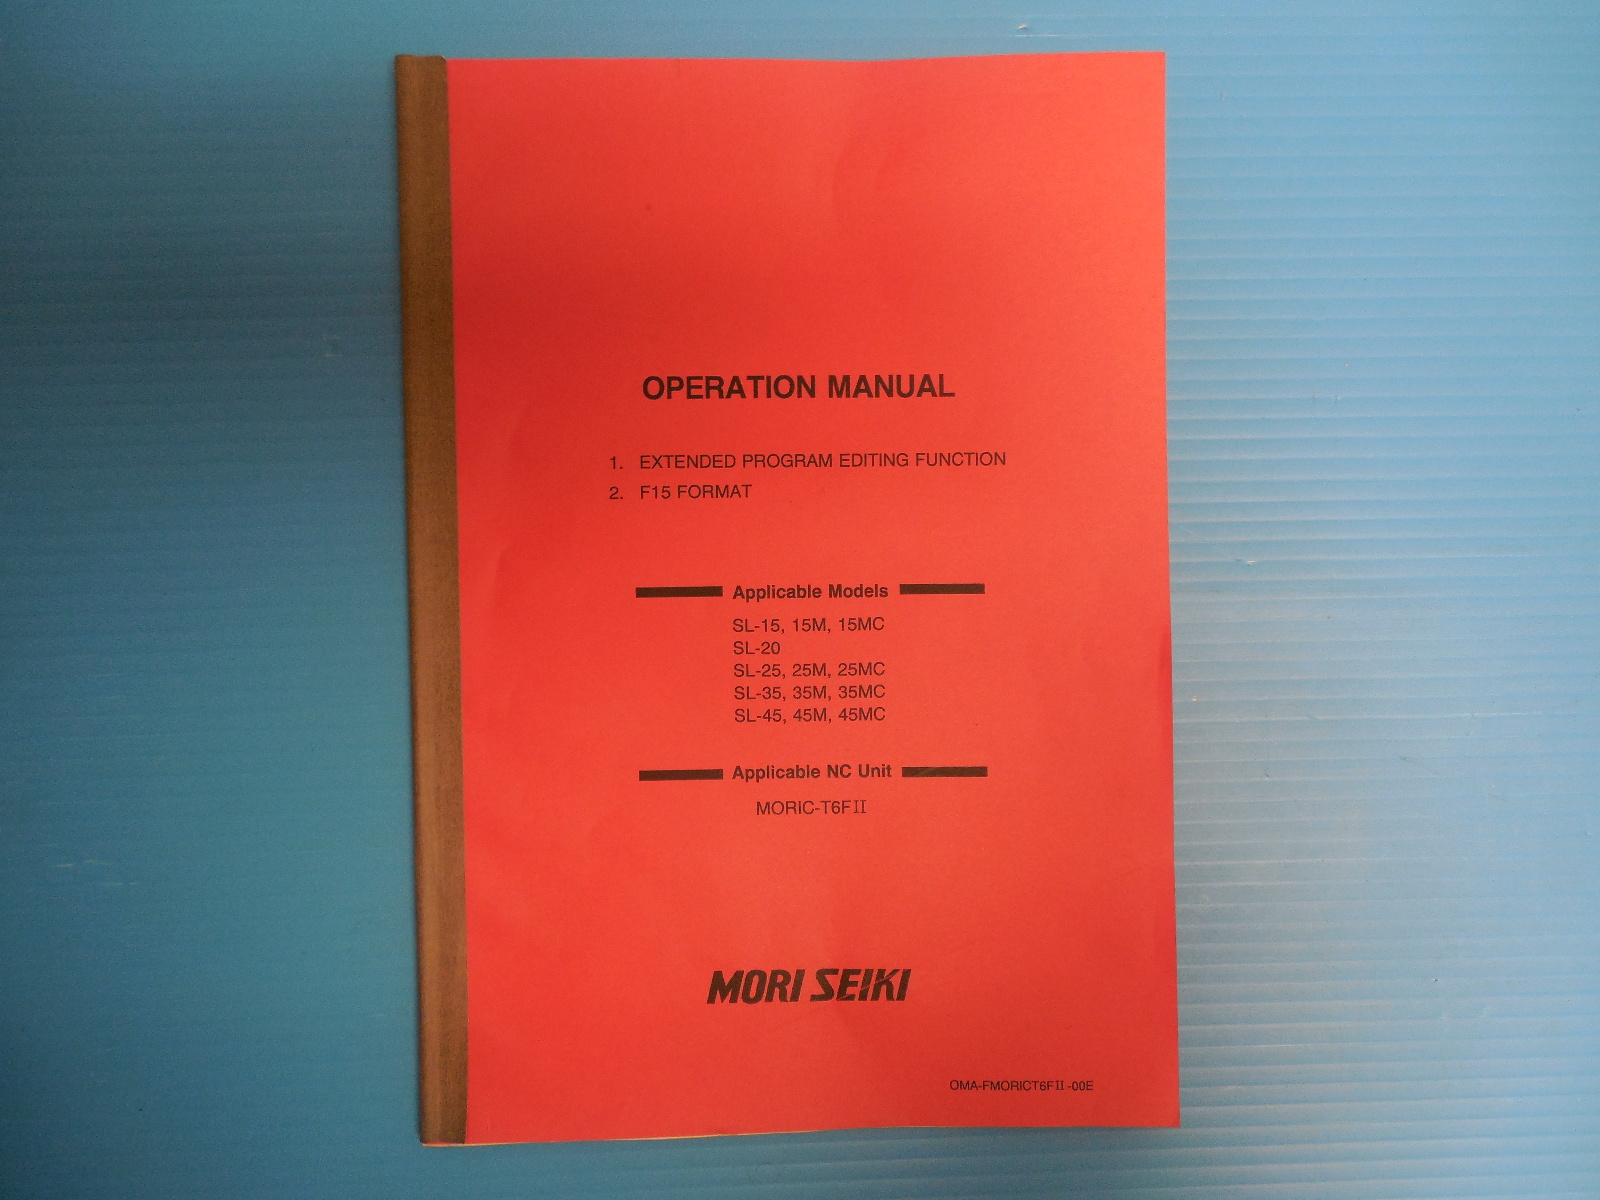 OPERATION MANUAL EXTENDED PROGRAM EDITING FUNCTION F15 FORMAT MORI SEIKI BM1121